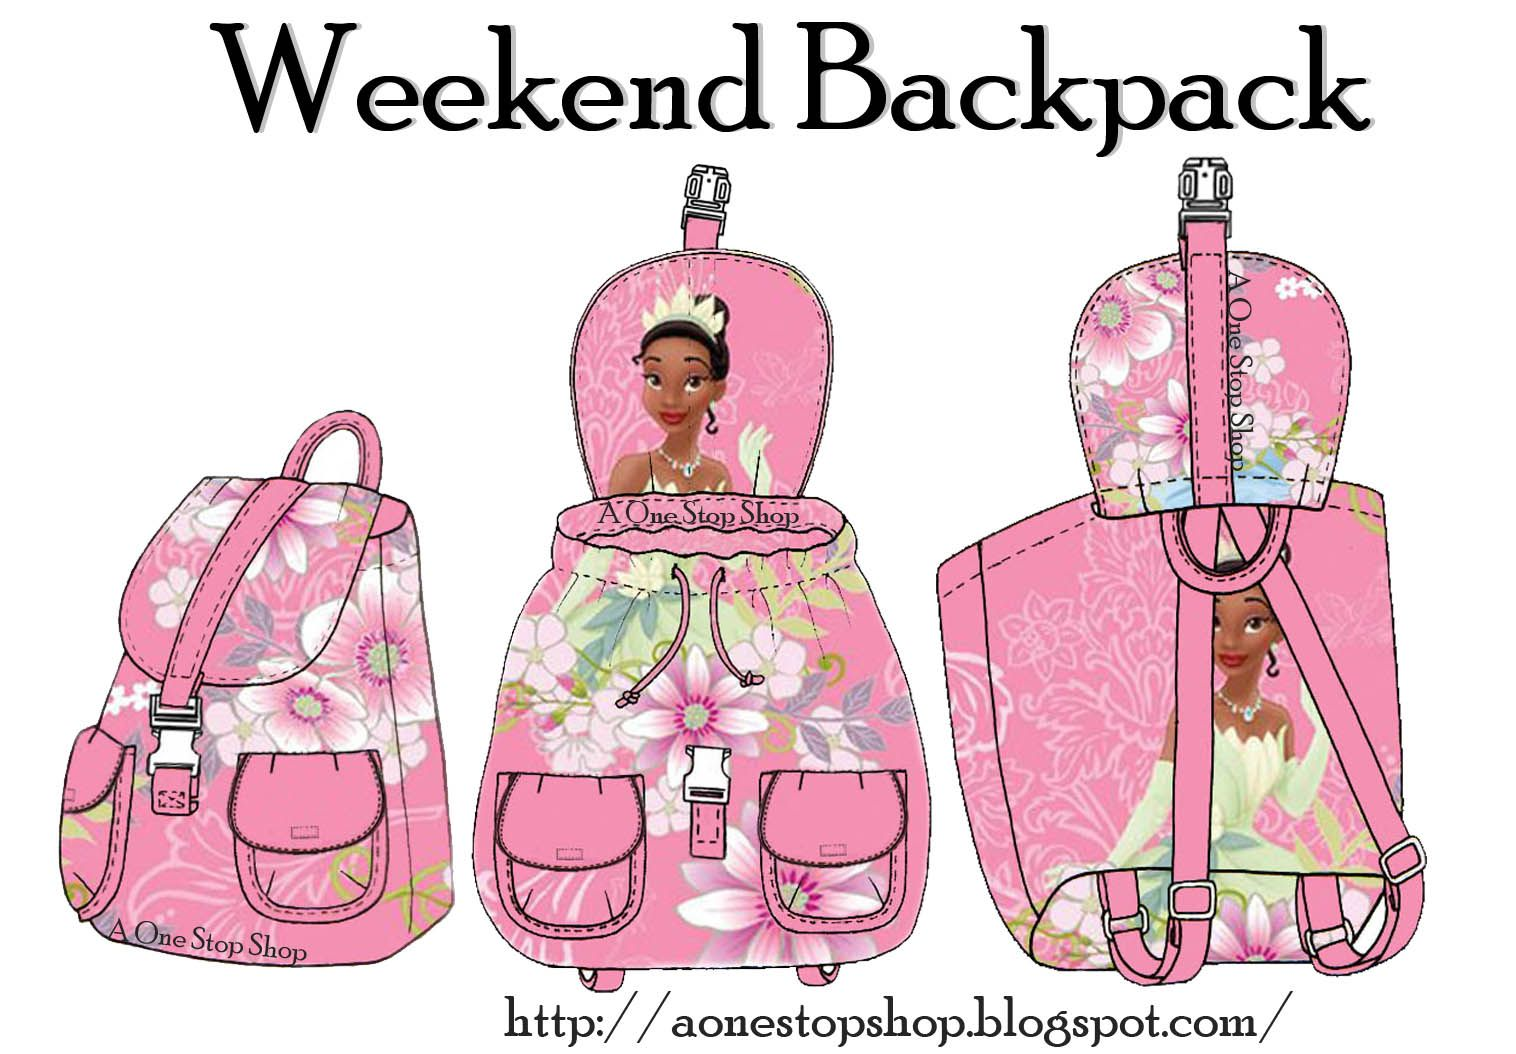 Weekend backpack free pdf sewing pattern to print pdf sewing weekend backpack free pdf sewing pattern to print by serenayuet sewing jeuxipadfo Choice Image